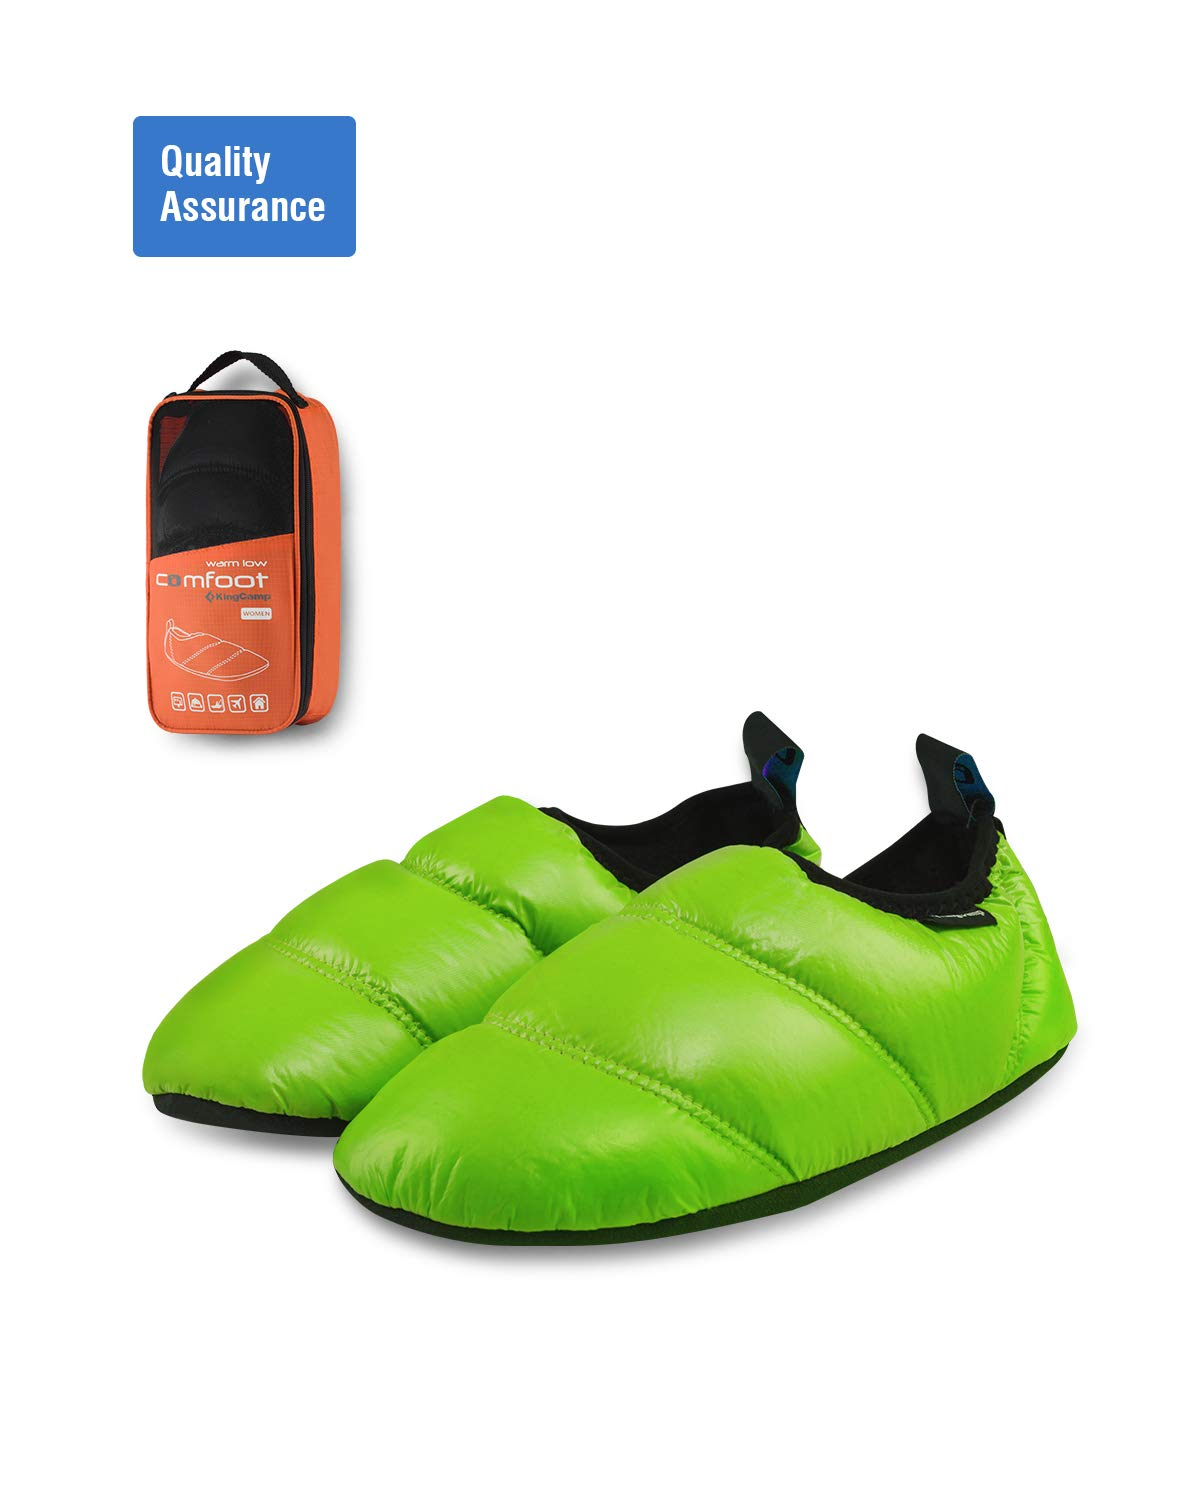 KingCamp Unisex Warm Soft Slippers With Slip Resistant Rubber Sole and Carry Bag (Check The Size Chart In The Description For Correct Size) (5-6, Green)